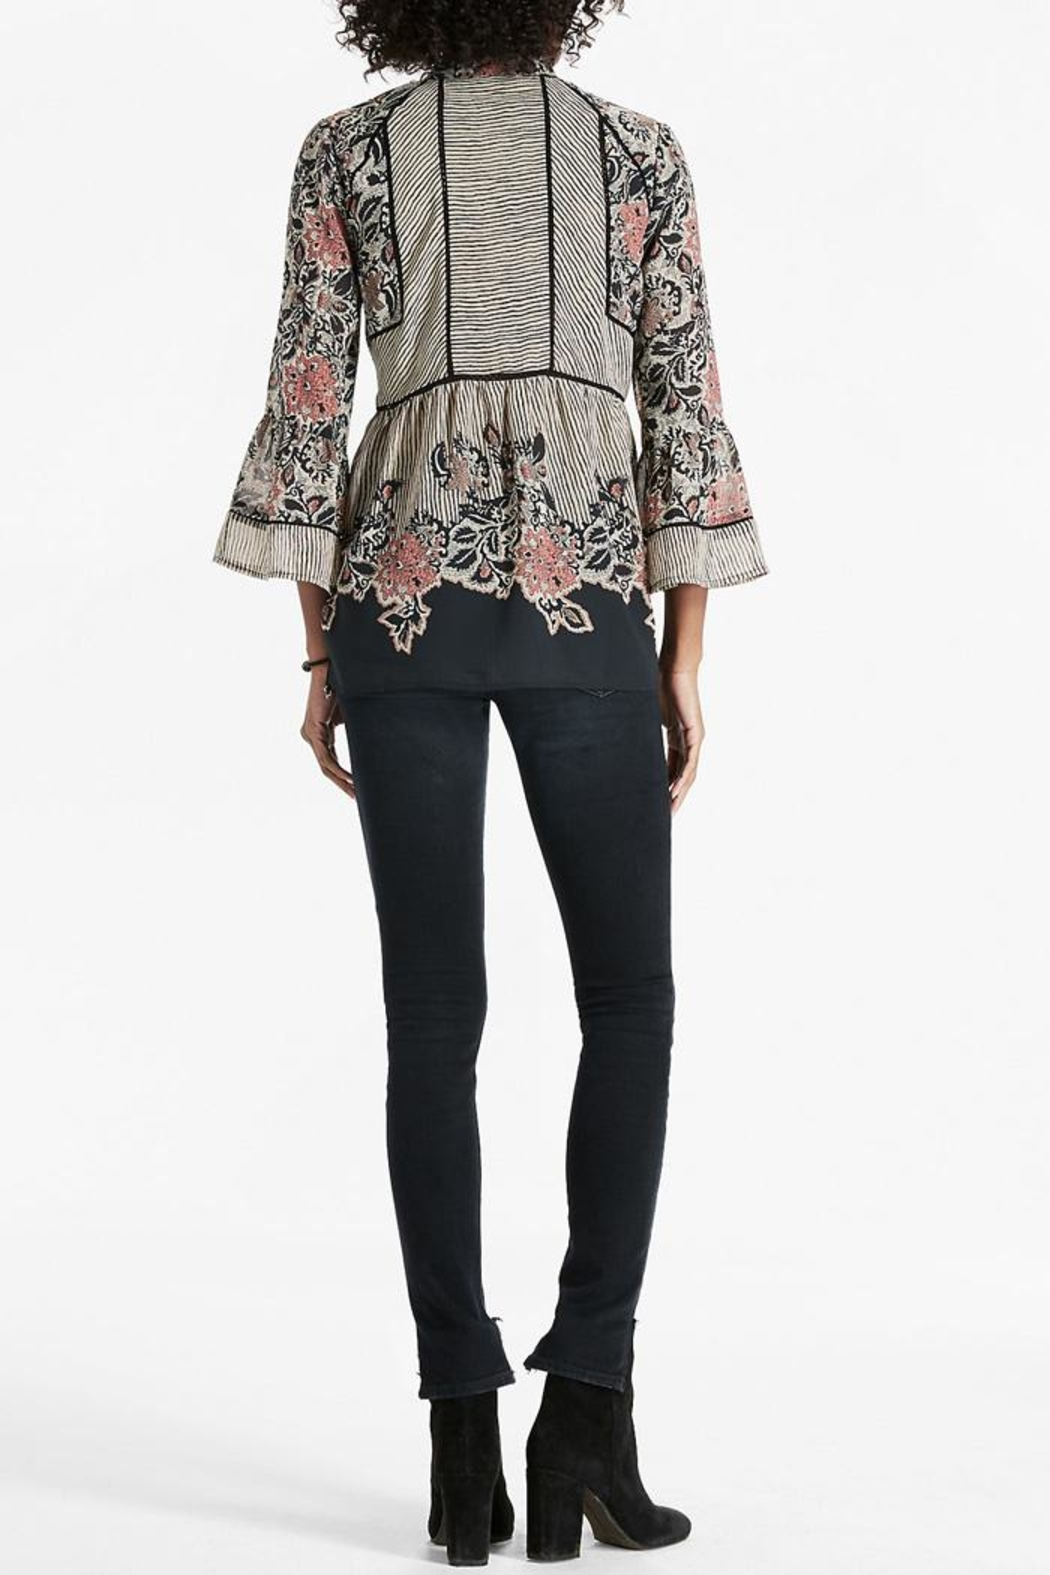 Lucky Brand Mixed Pattern Blouse - Front Full Image